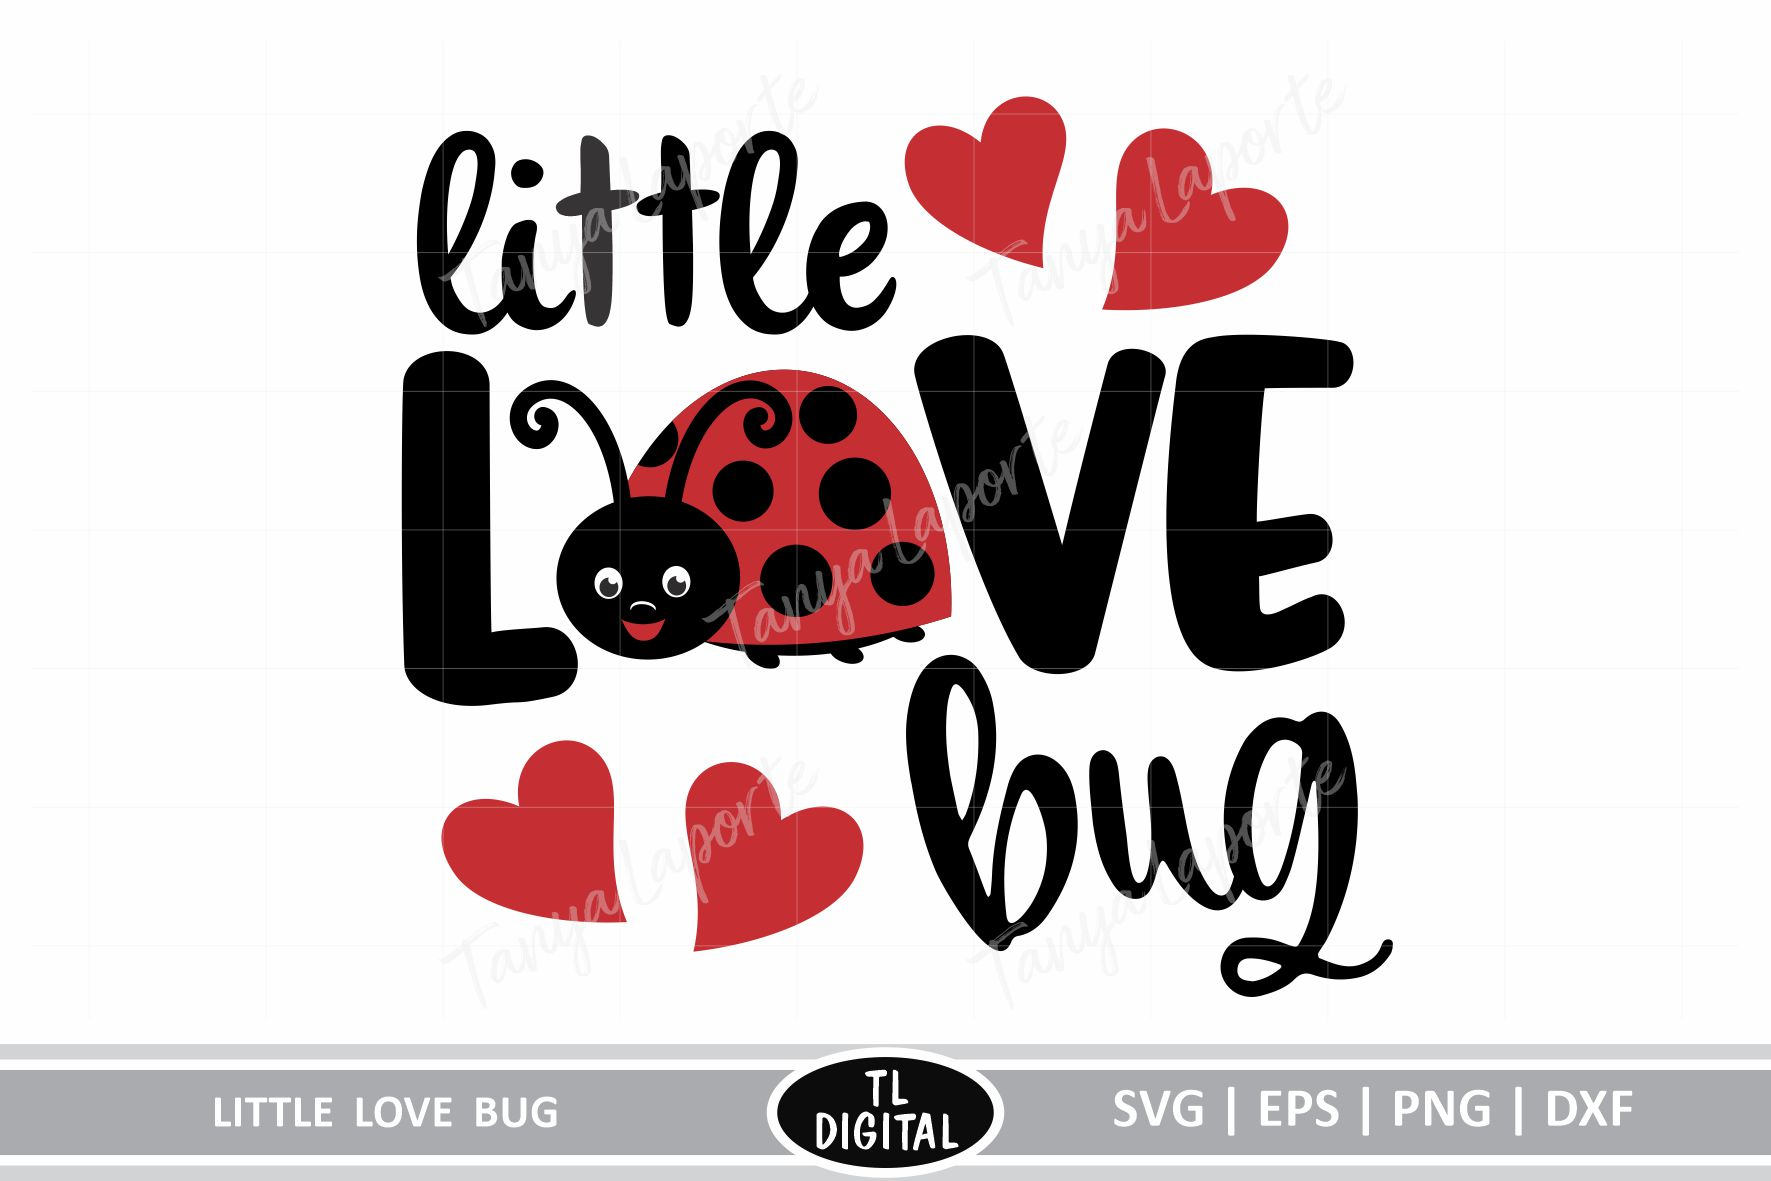 Download Free Little Love Bug Grafico Por Tl Digital Creative Fabrica for Cricut Explore, Silhouette and other cutting machines.